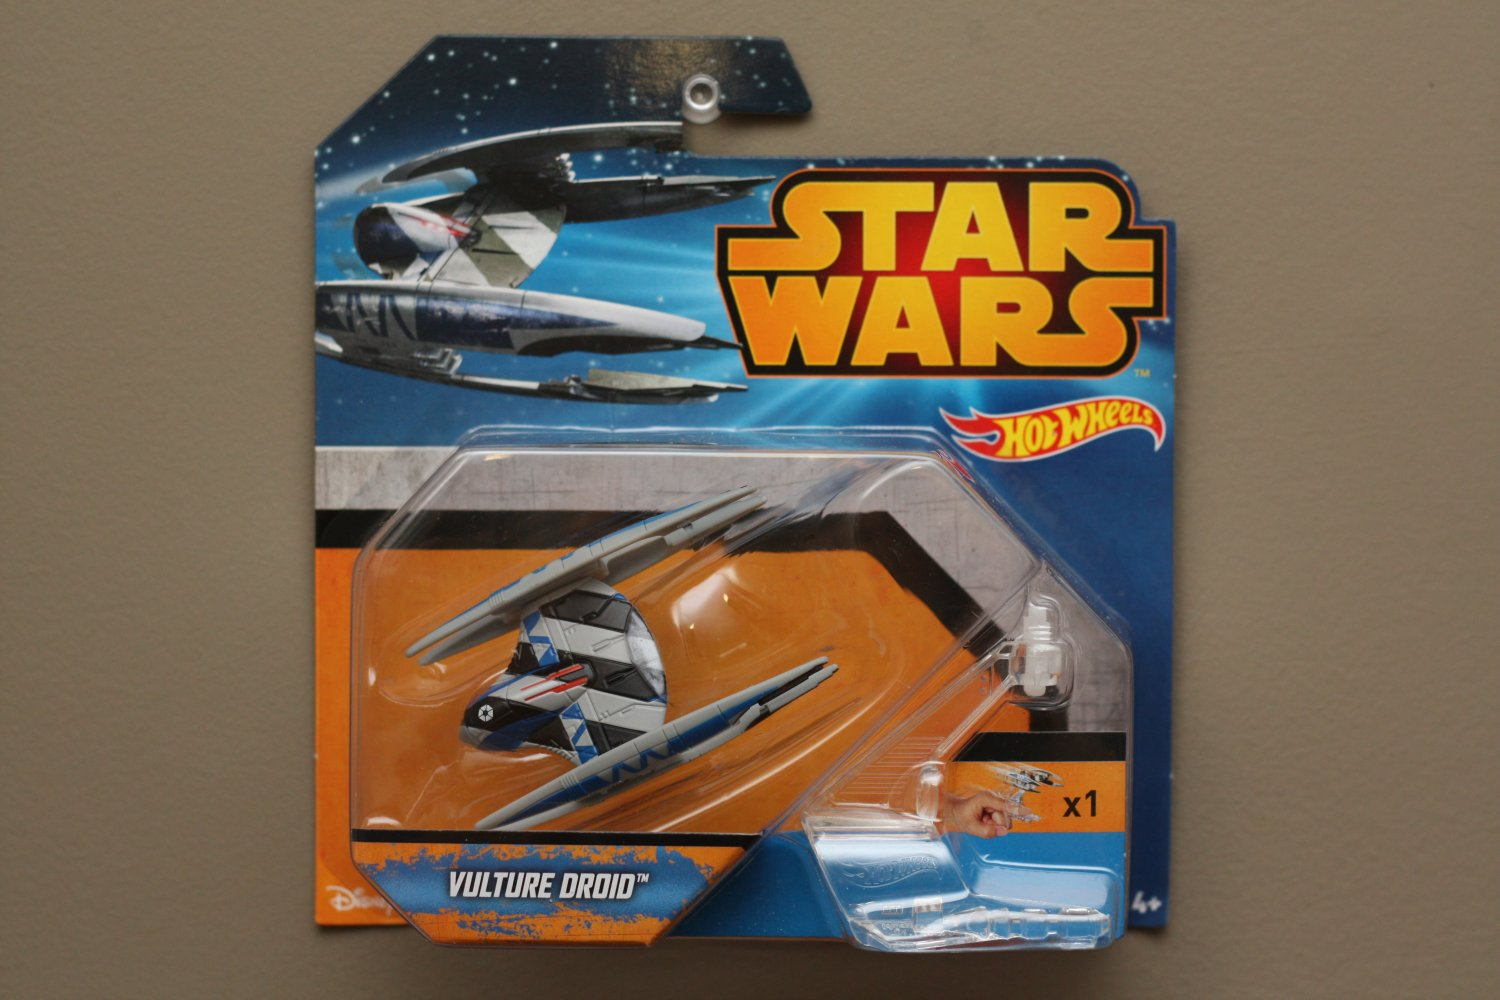 Hot Wheels 2015 Star Wars Ships Vulture Droid